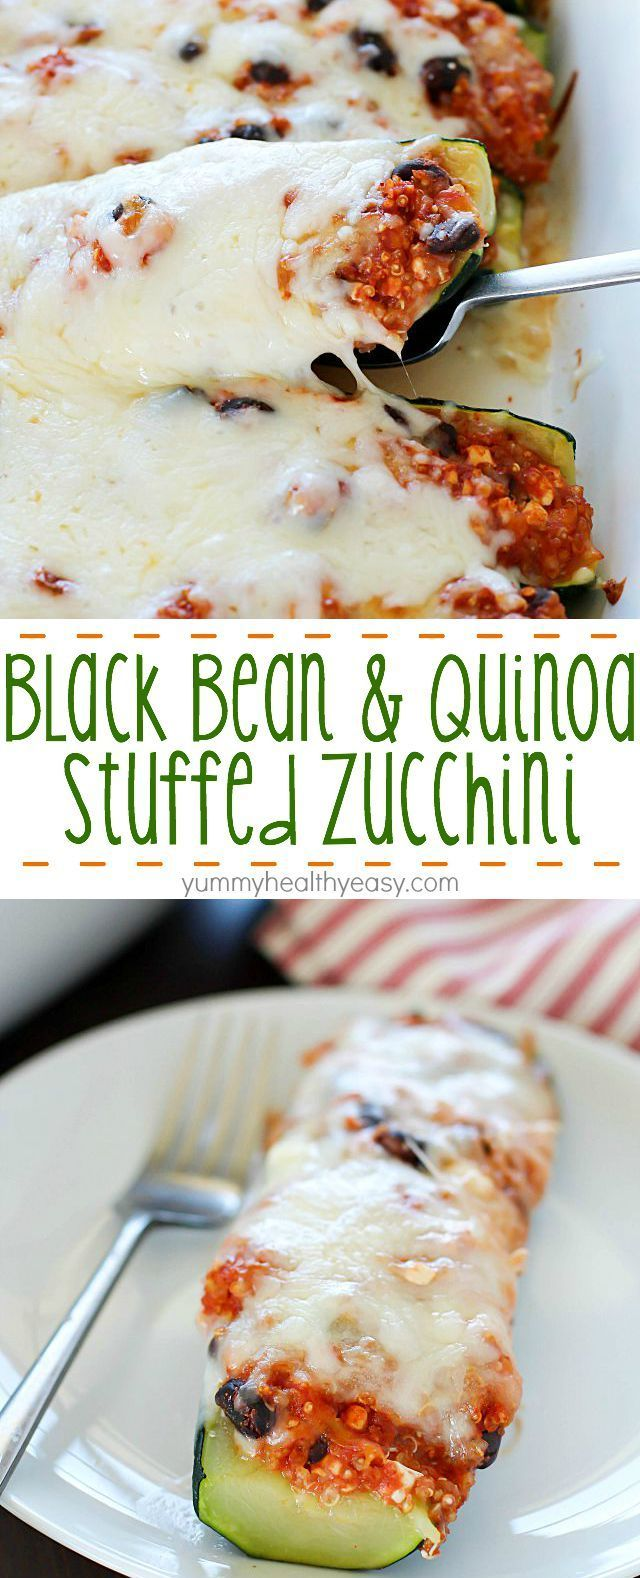 Healthy Black Bean & Quinoa Stuffed Zucchini - a hearty and easy meatless side dish or dinner that's gluten-free and clean-eating. So delicious, you won't even think it's healthy!